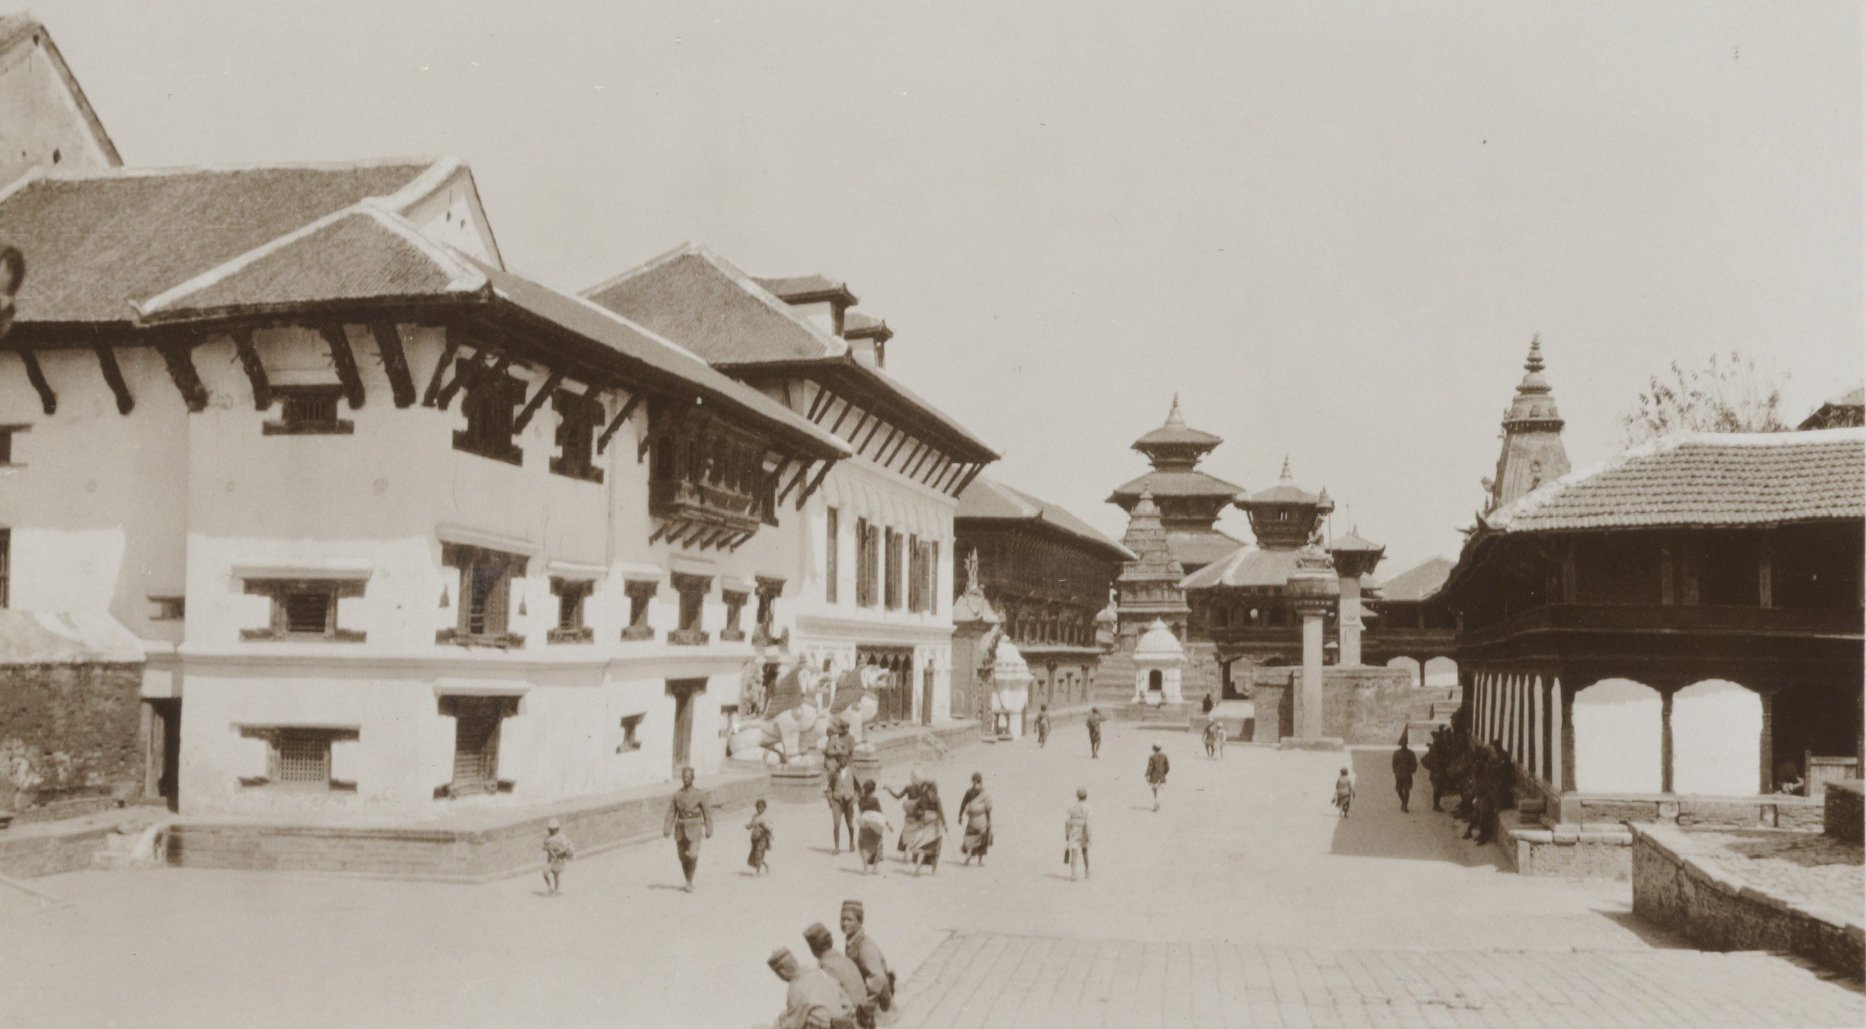 Durbar Square during 1932-34 image